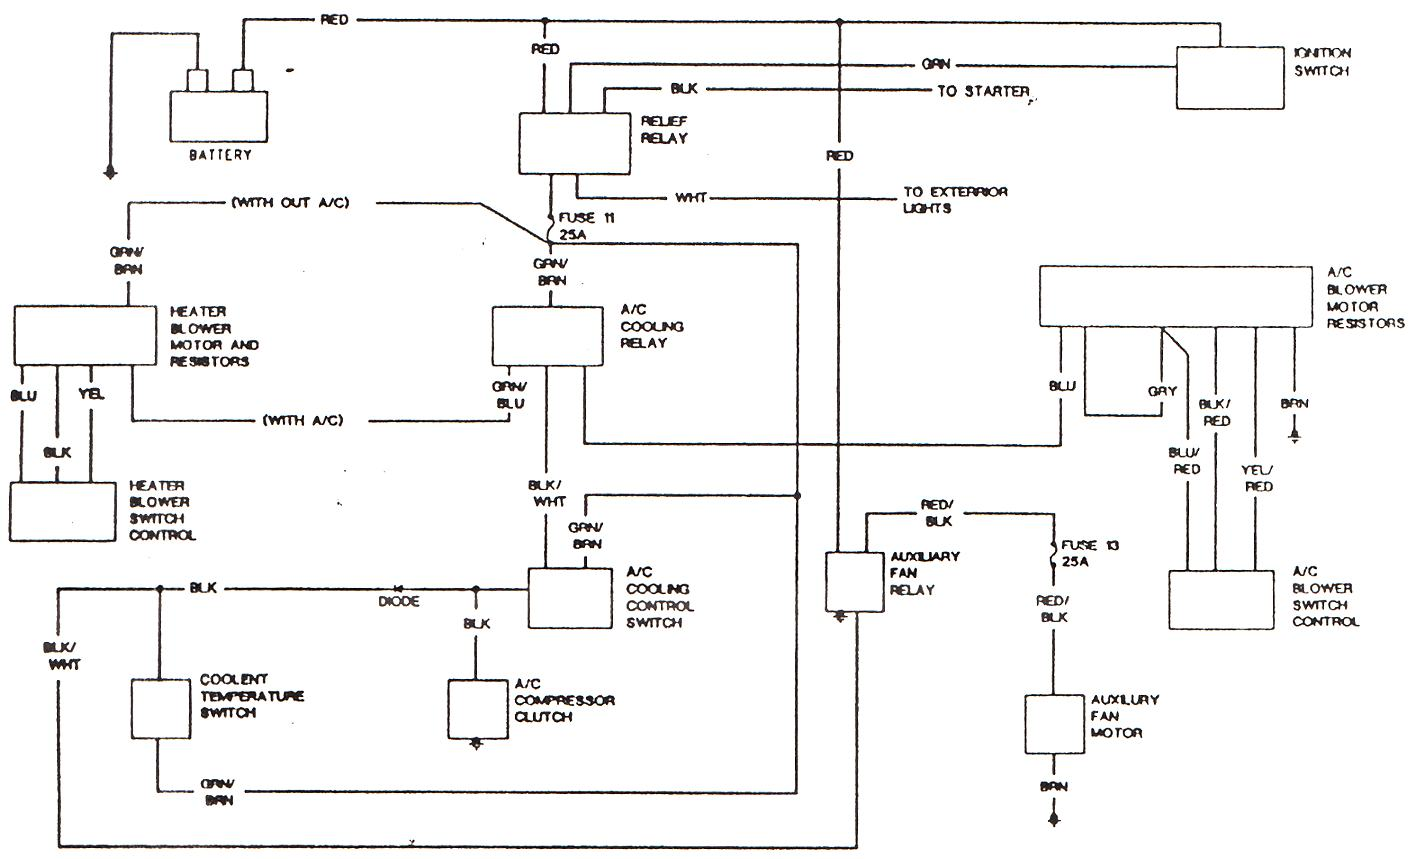 Fedders Air Conditioner Wiring Diagram Aaon Schematics